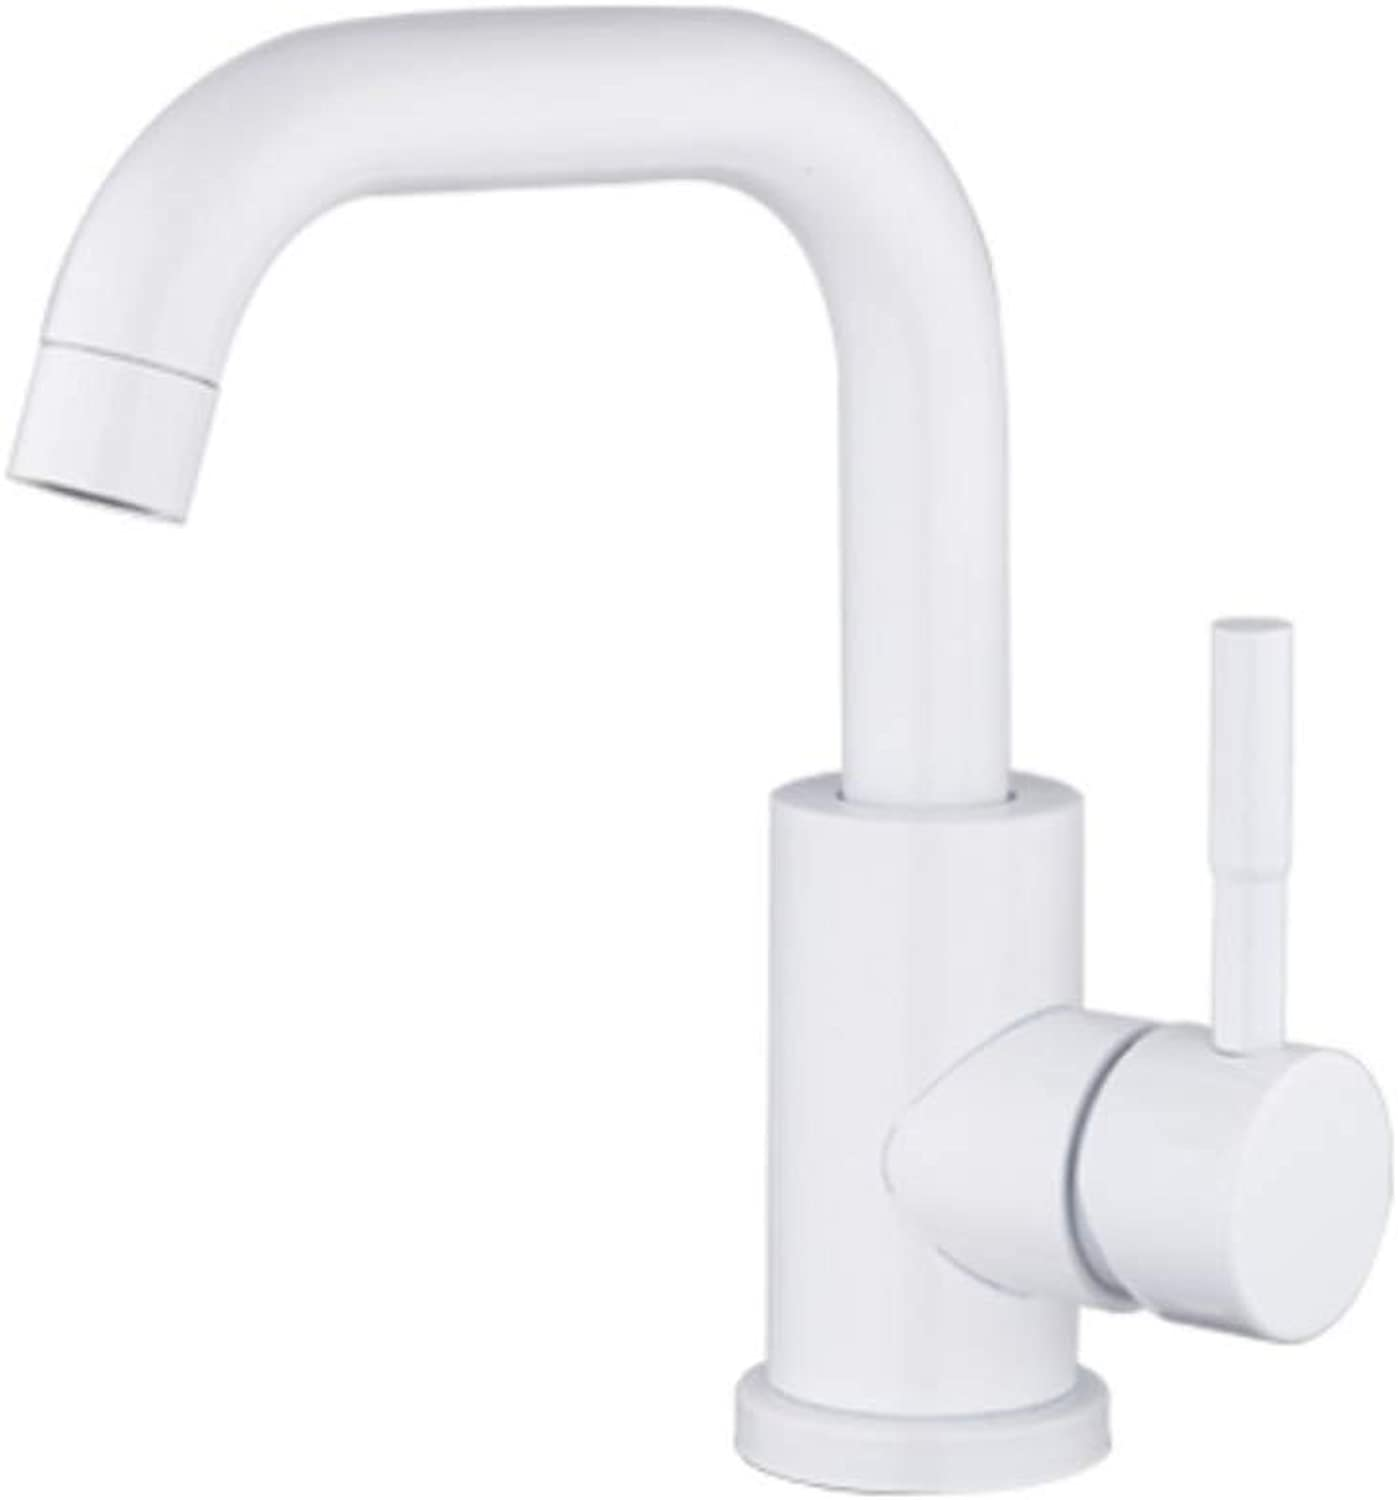 Mzdpp New Arrival Hot and Cold Water Bathroom Faucet Sink Innovative Fashion Style and Bathroom Sink Faucet,B